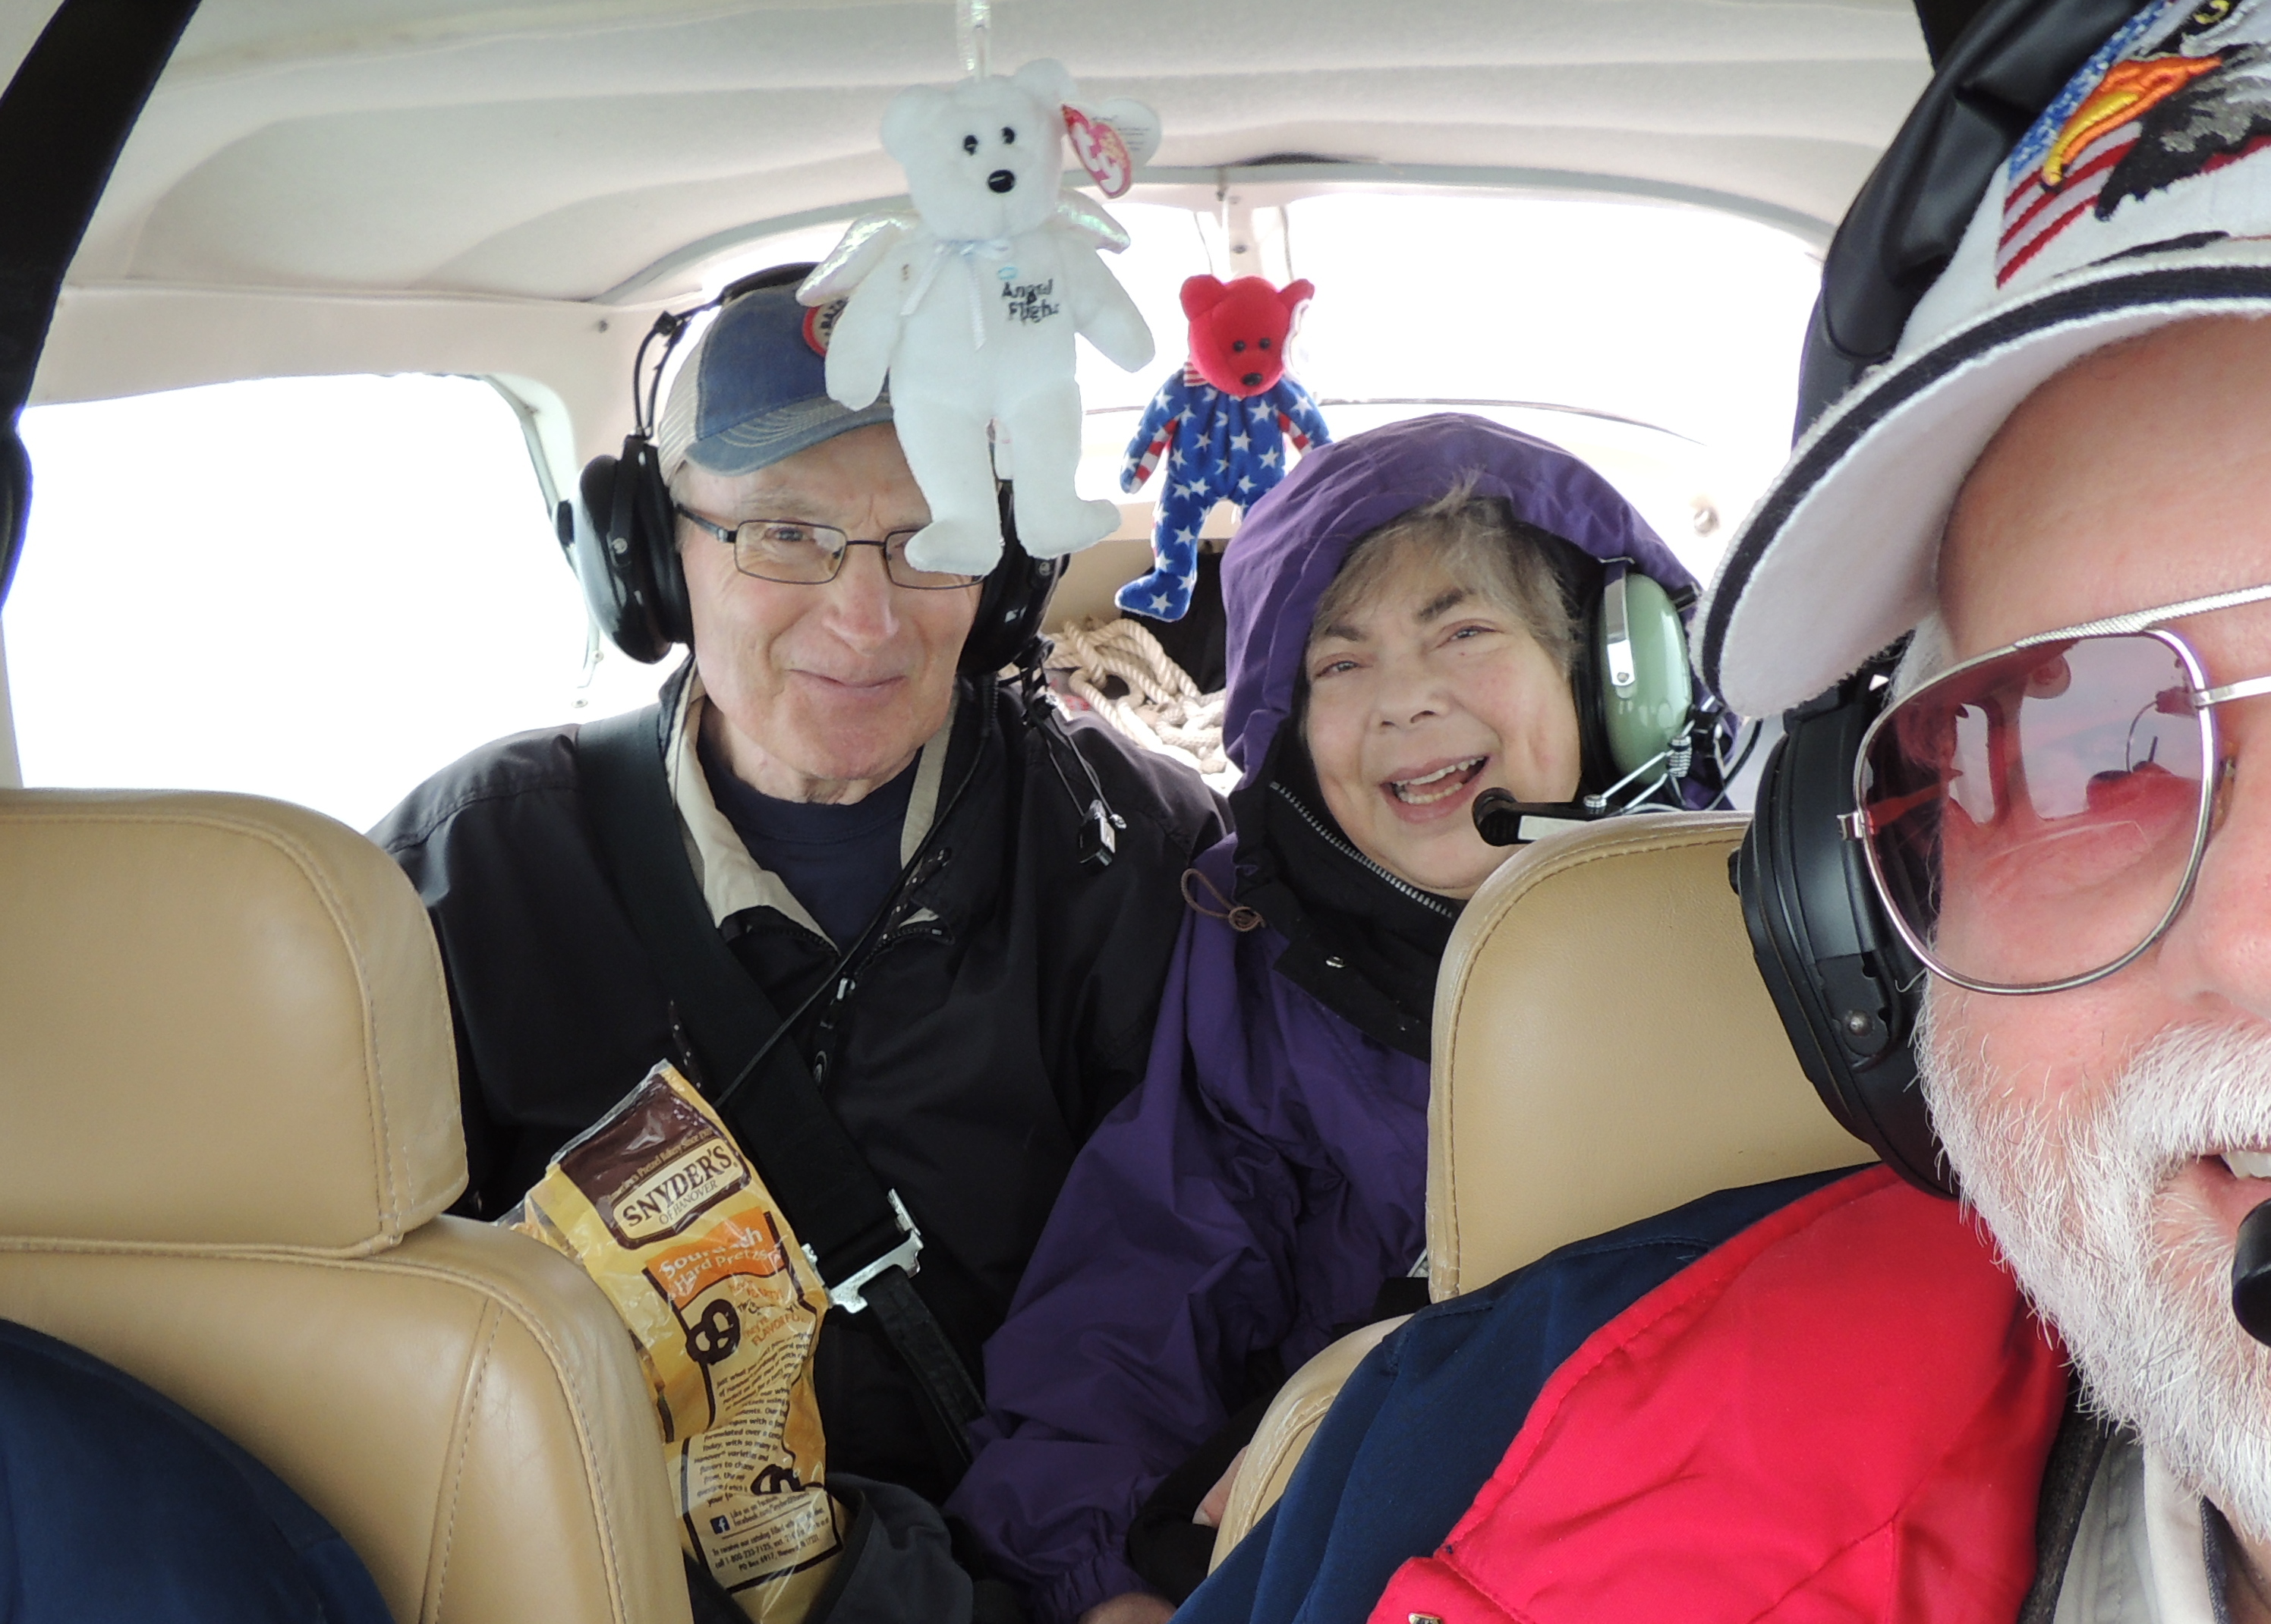 Happy Passengers .......  Philip and Brenda ..... on our way to Pittsburgh PA